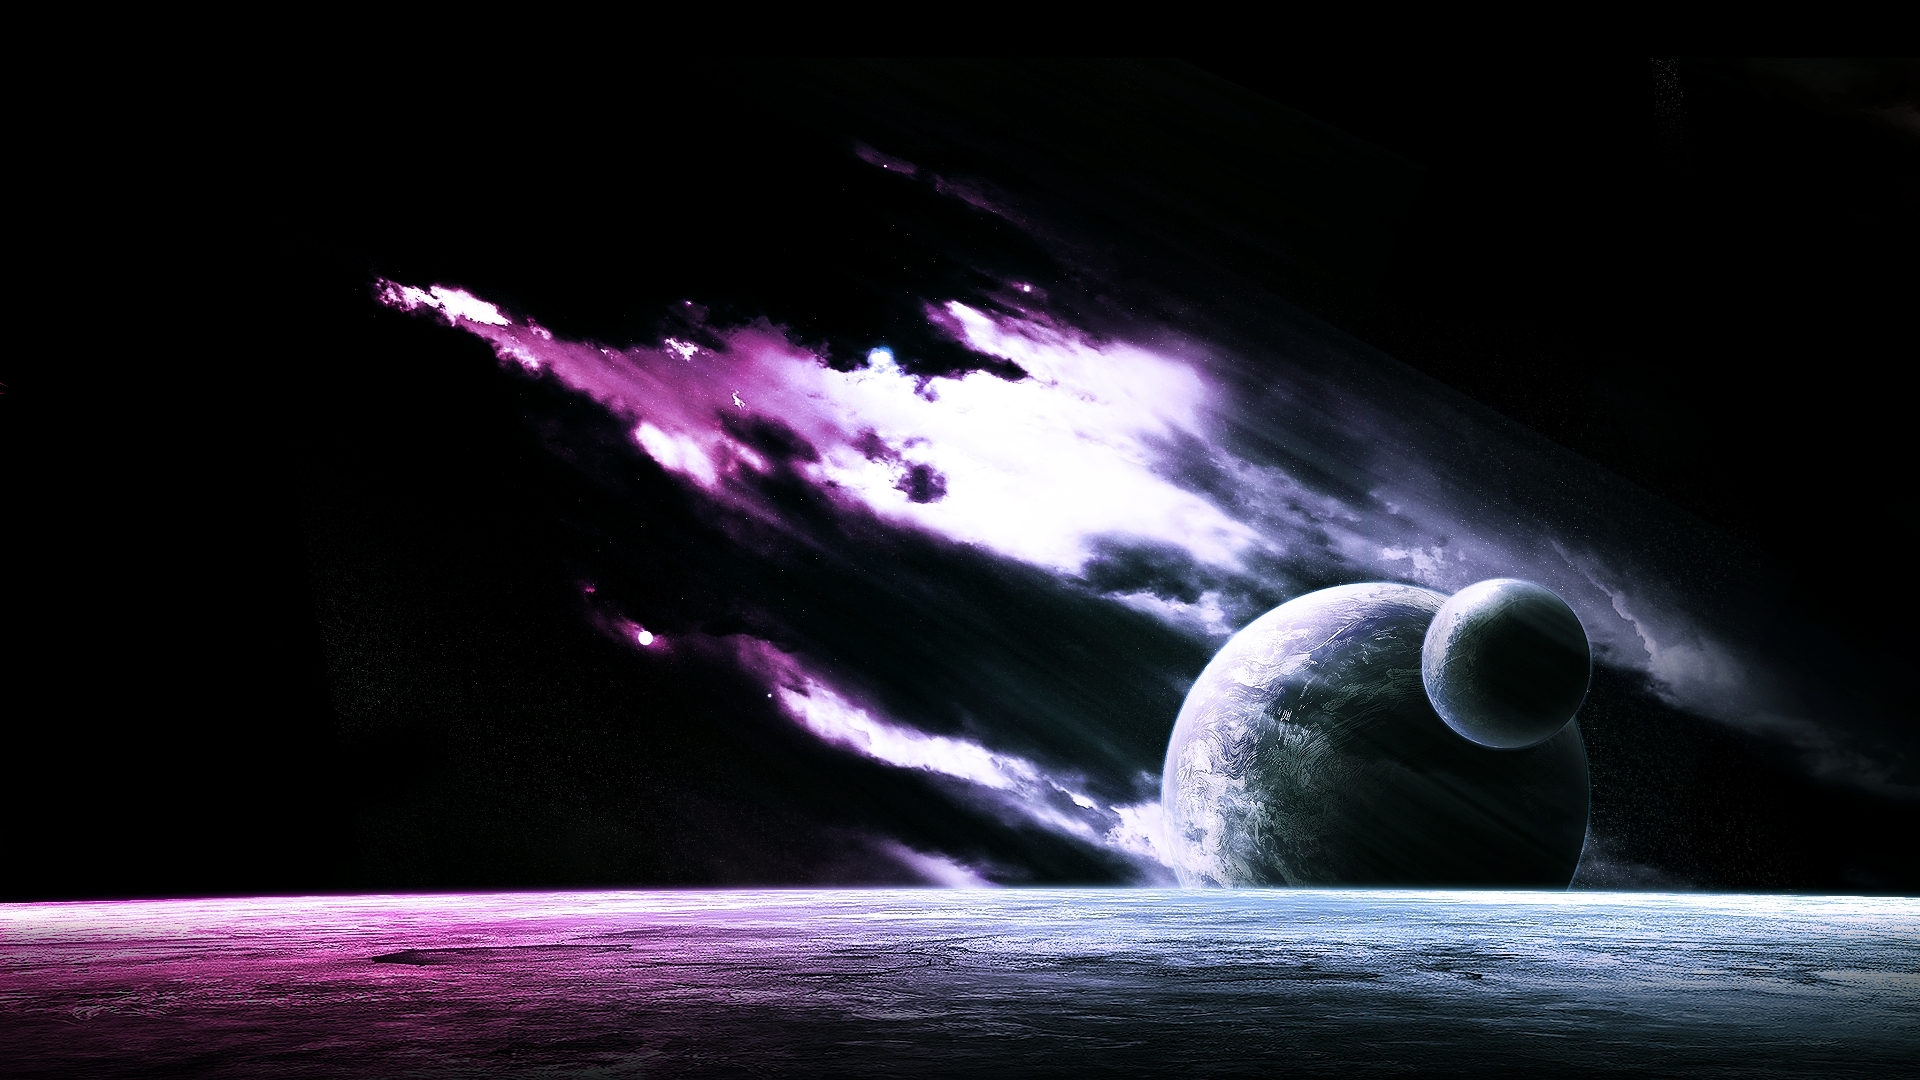 outer space science fiction amethyst industry science